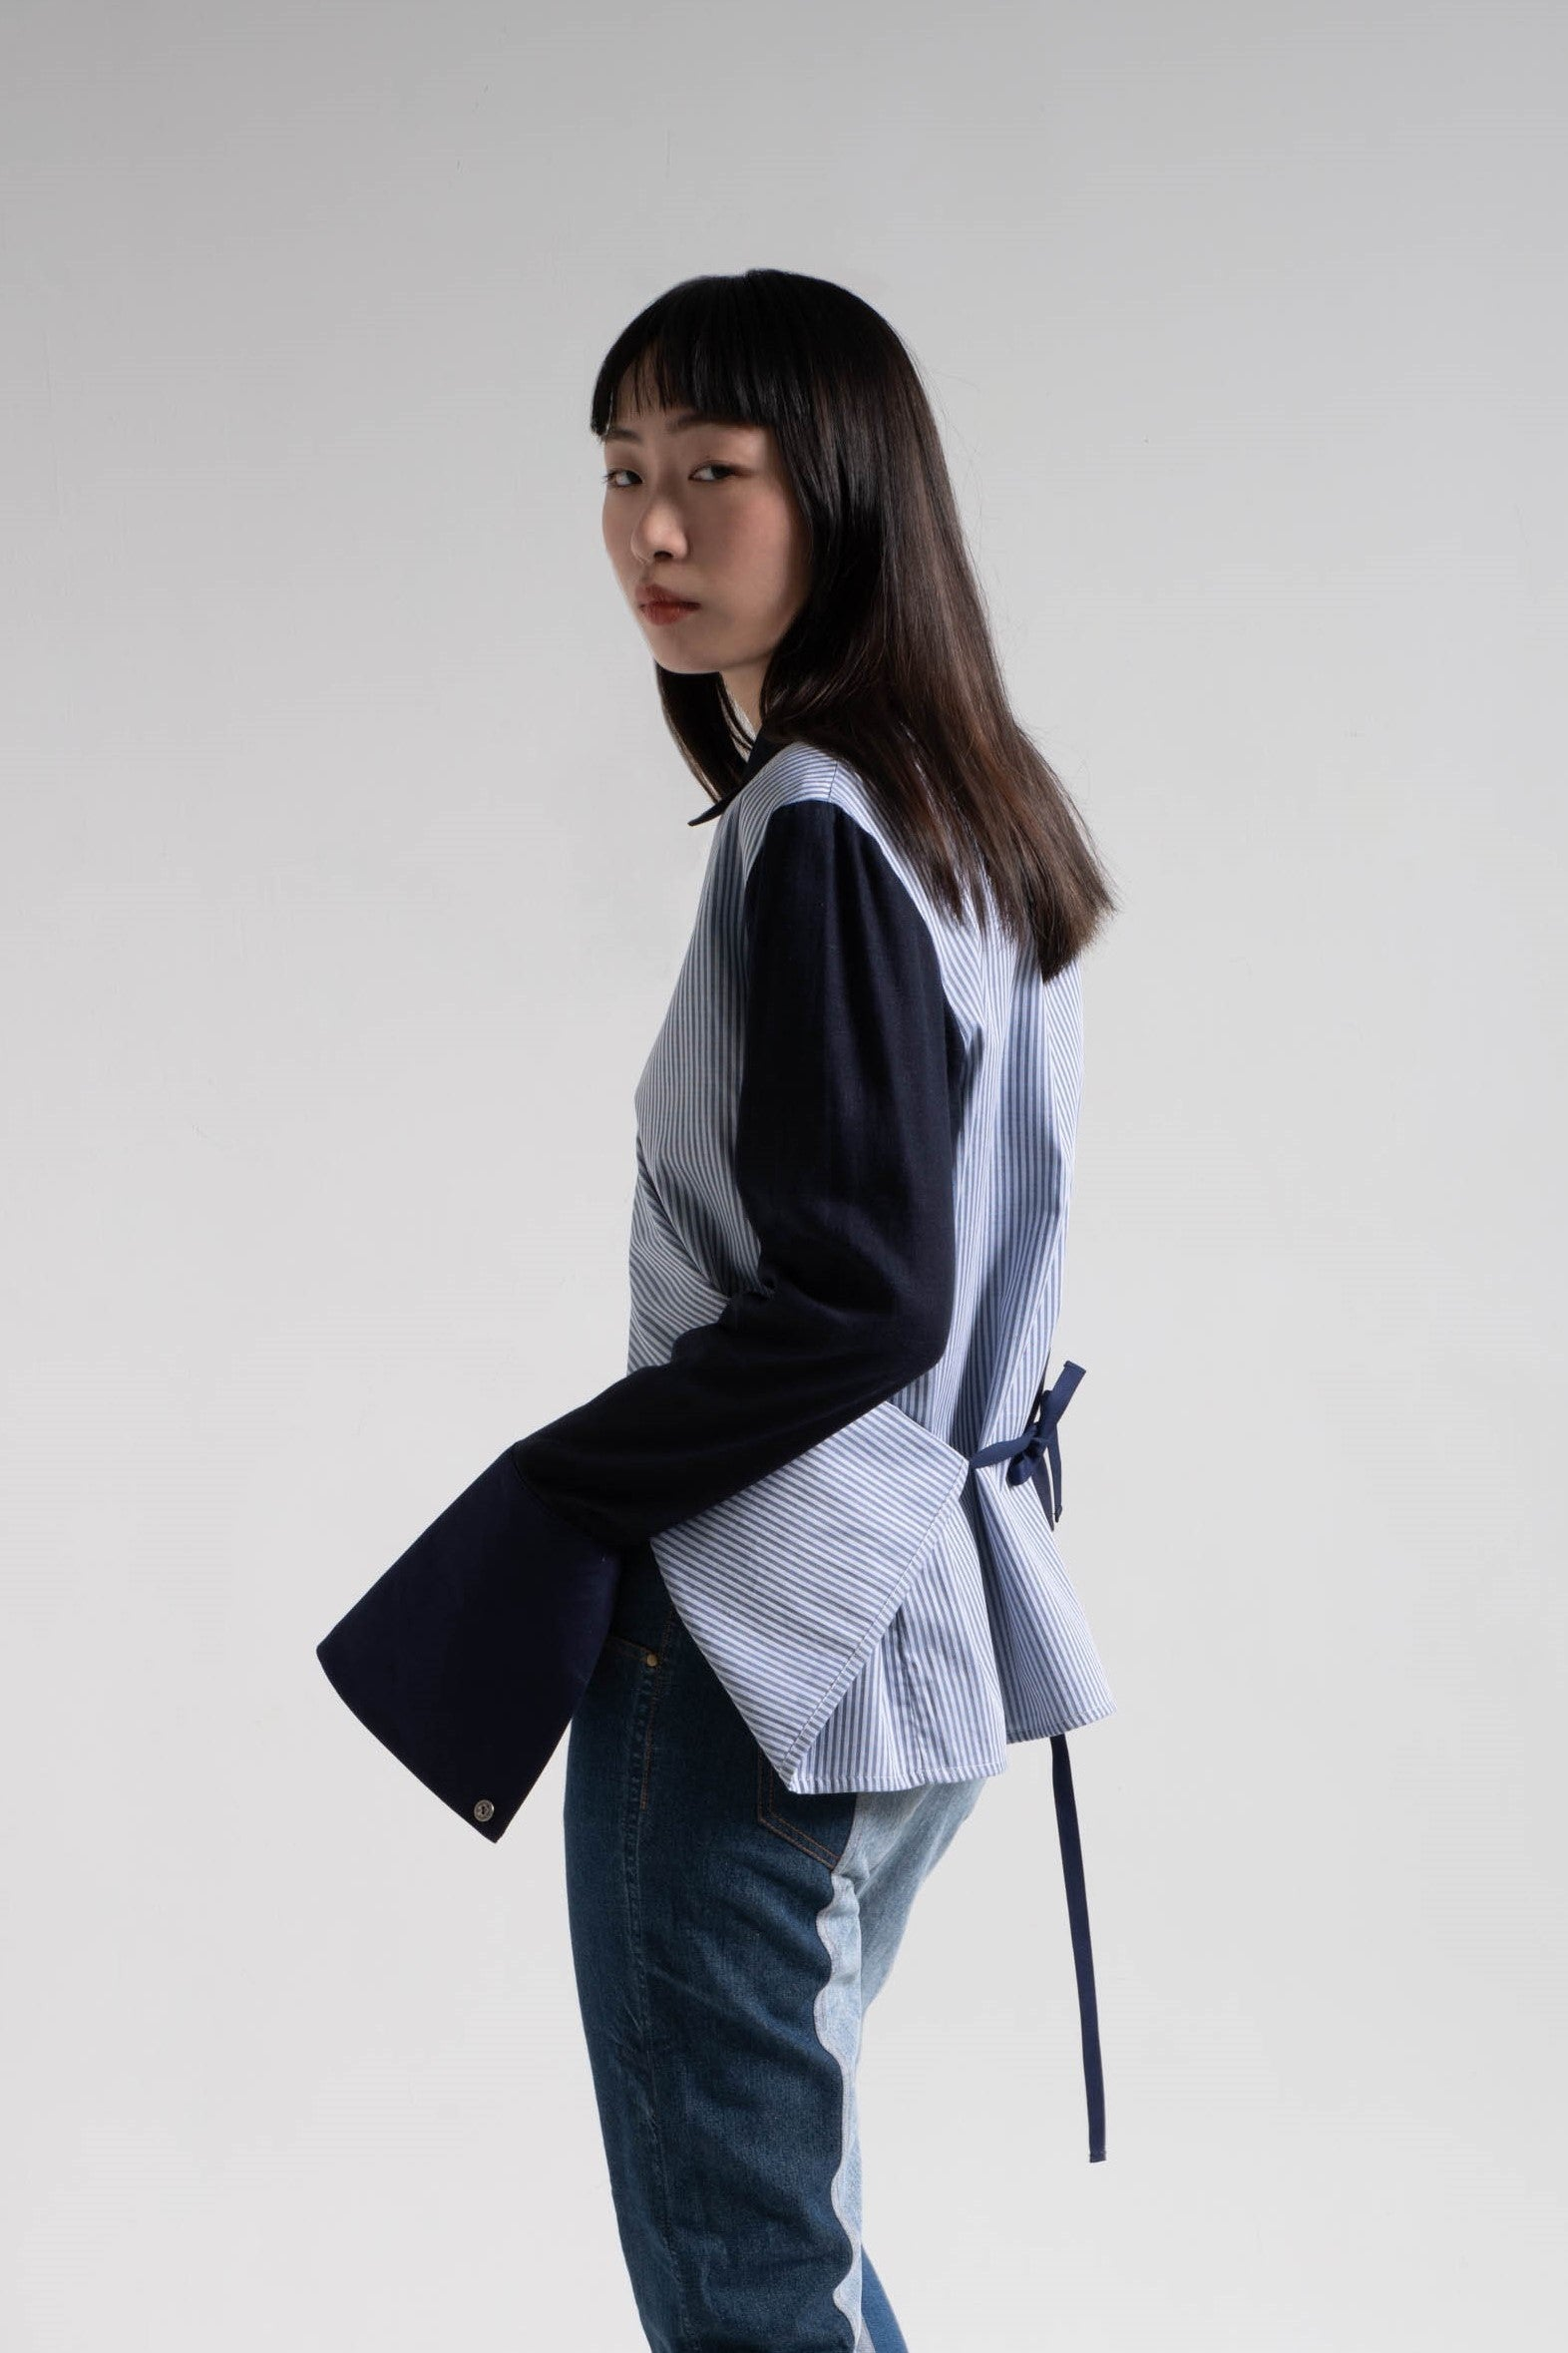 Patched fabric overlap shirt